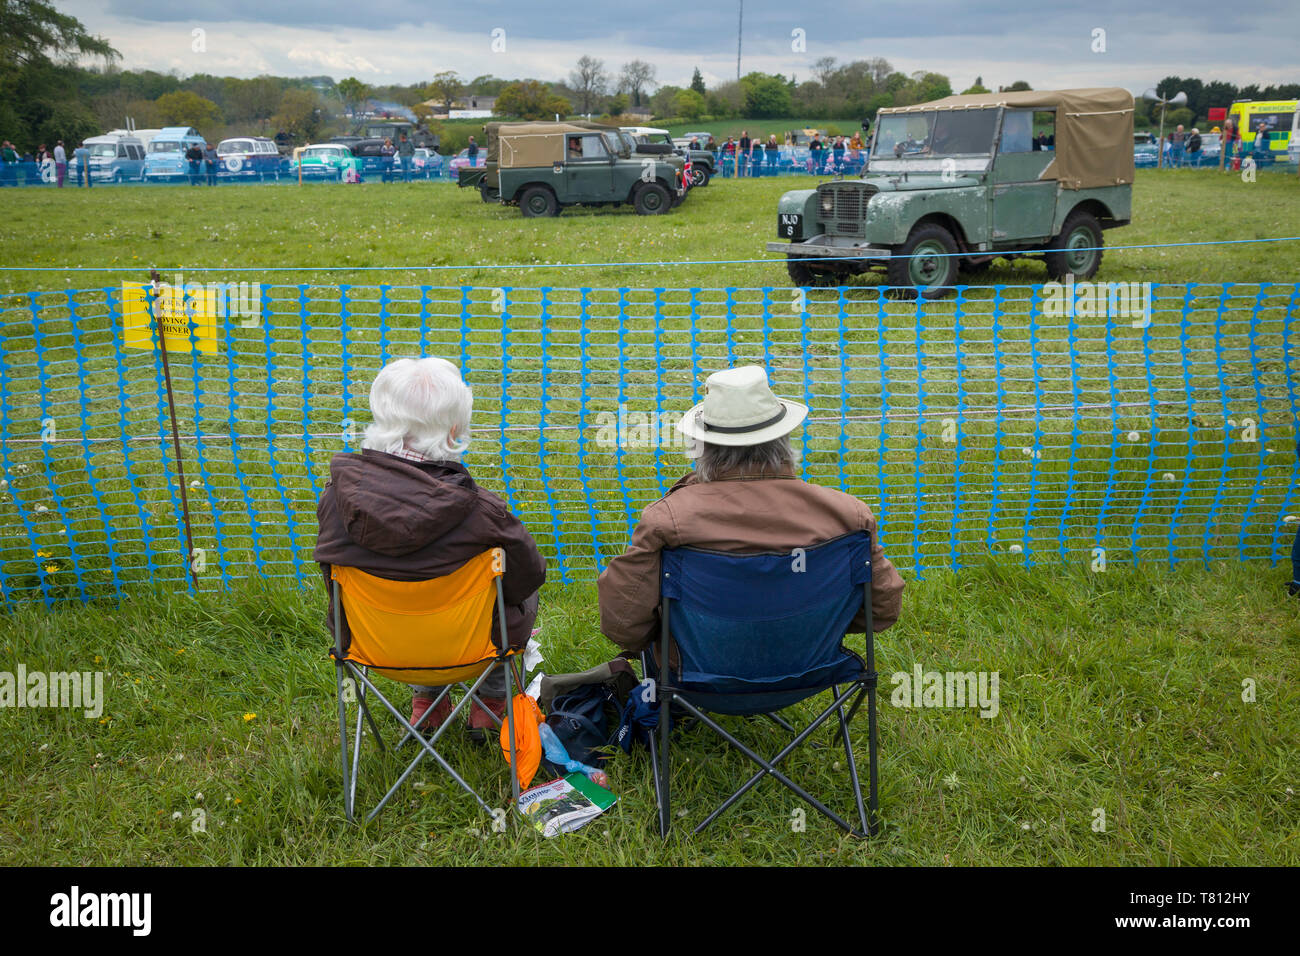 Two seated spectators watch a display of classic Land Rovers at a country show. Stock Photo